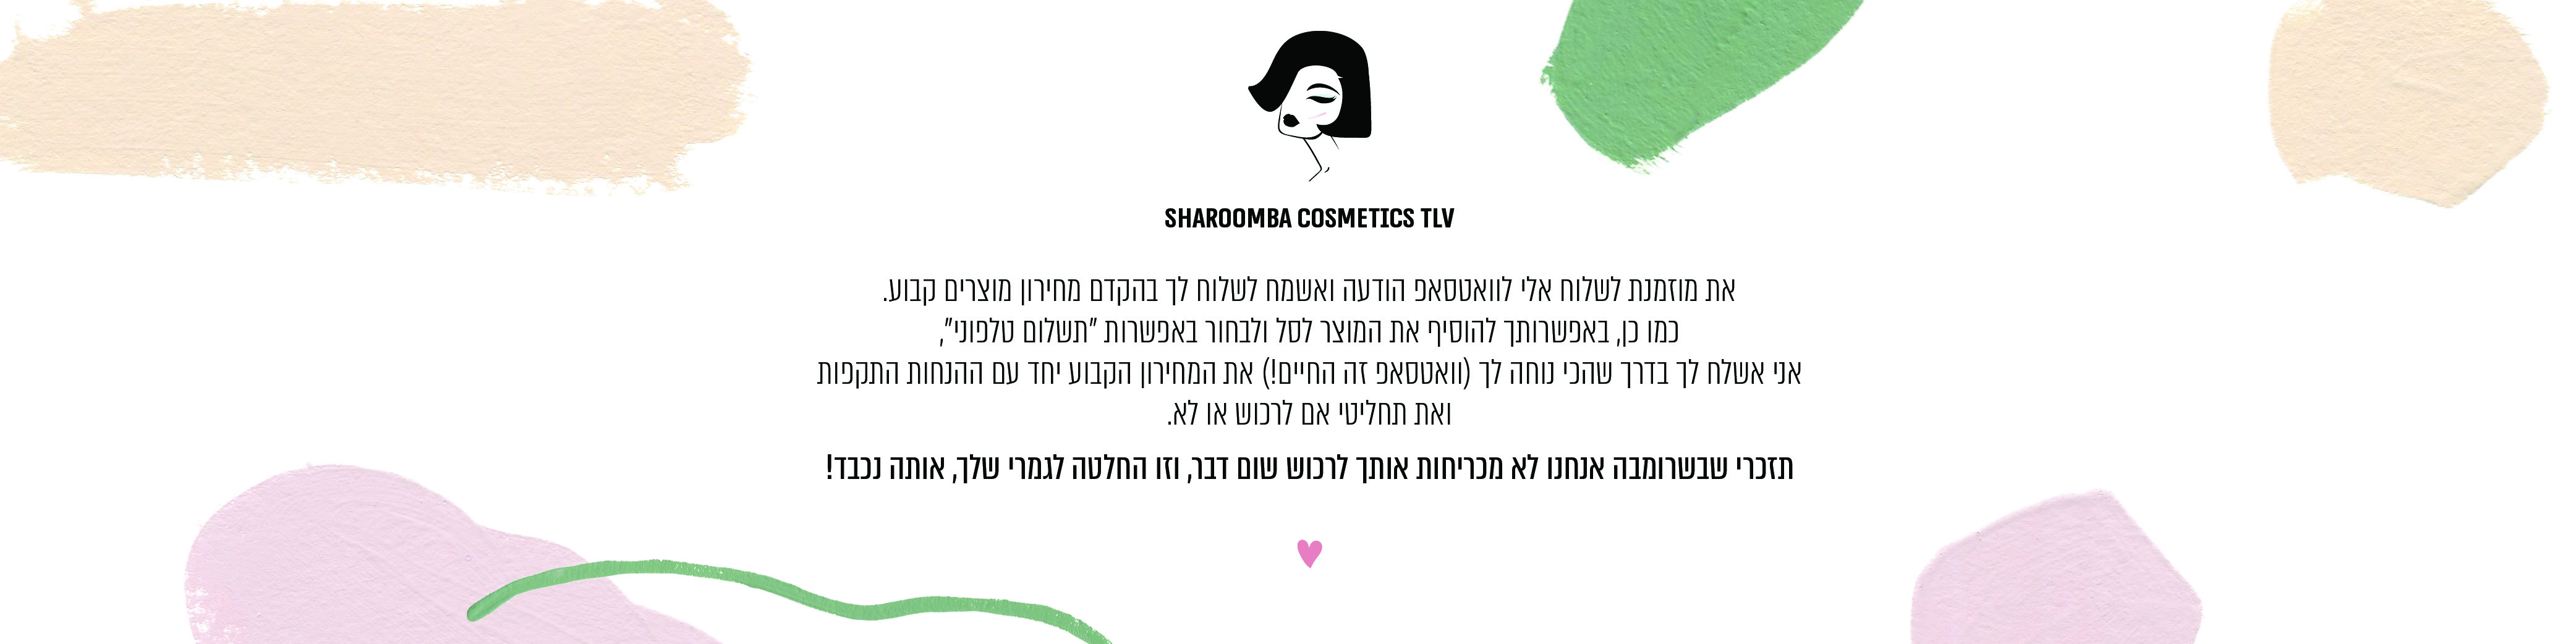 טיפול באקנה ופוסט אקנה - Sharoomba shop